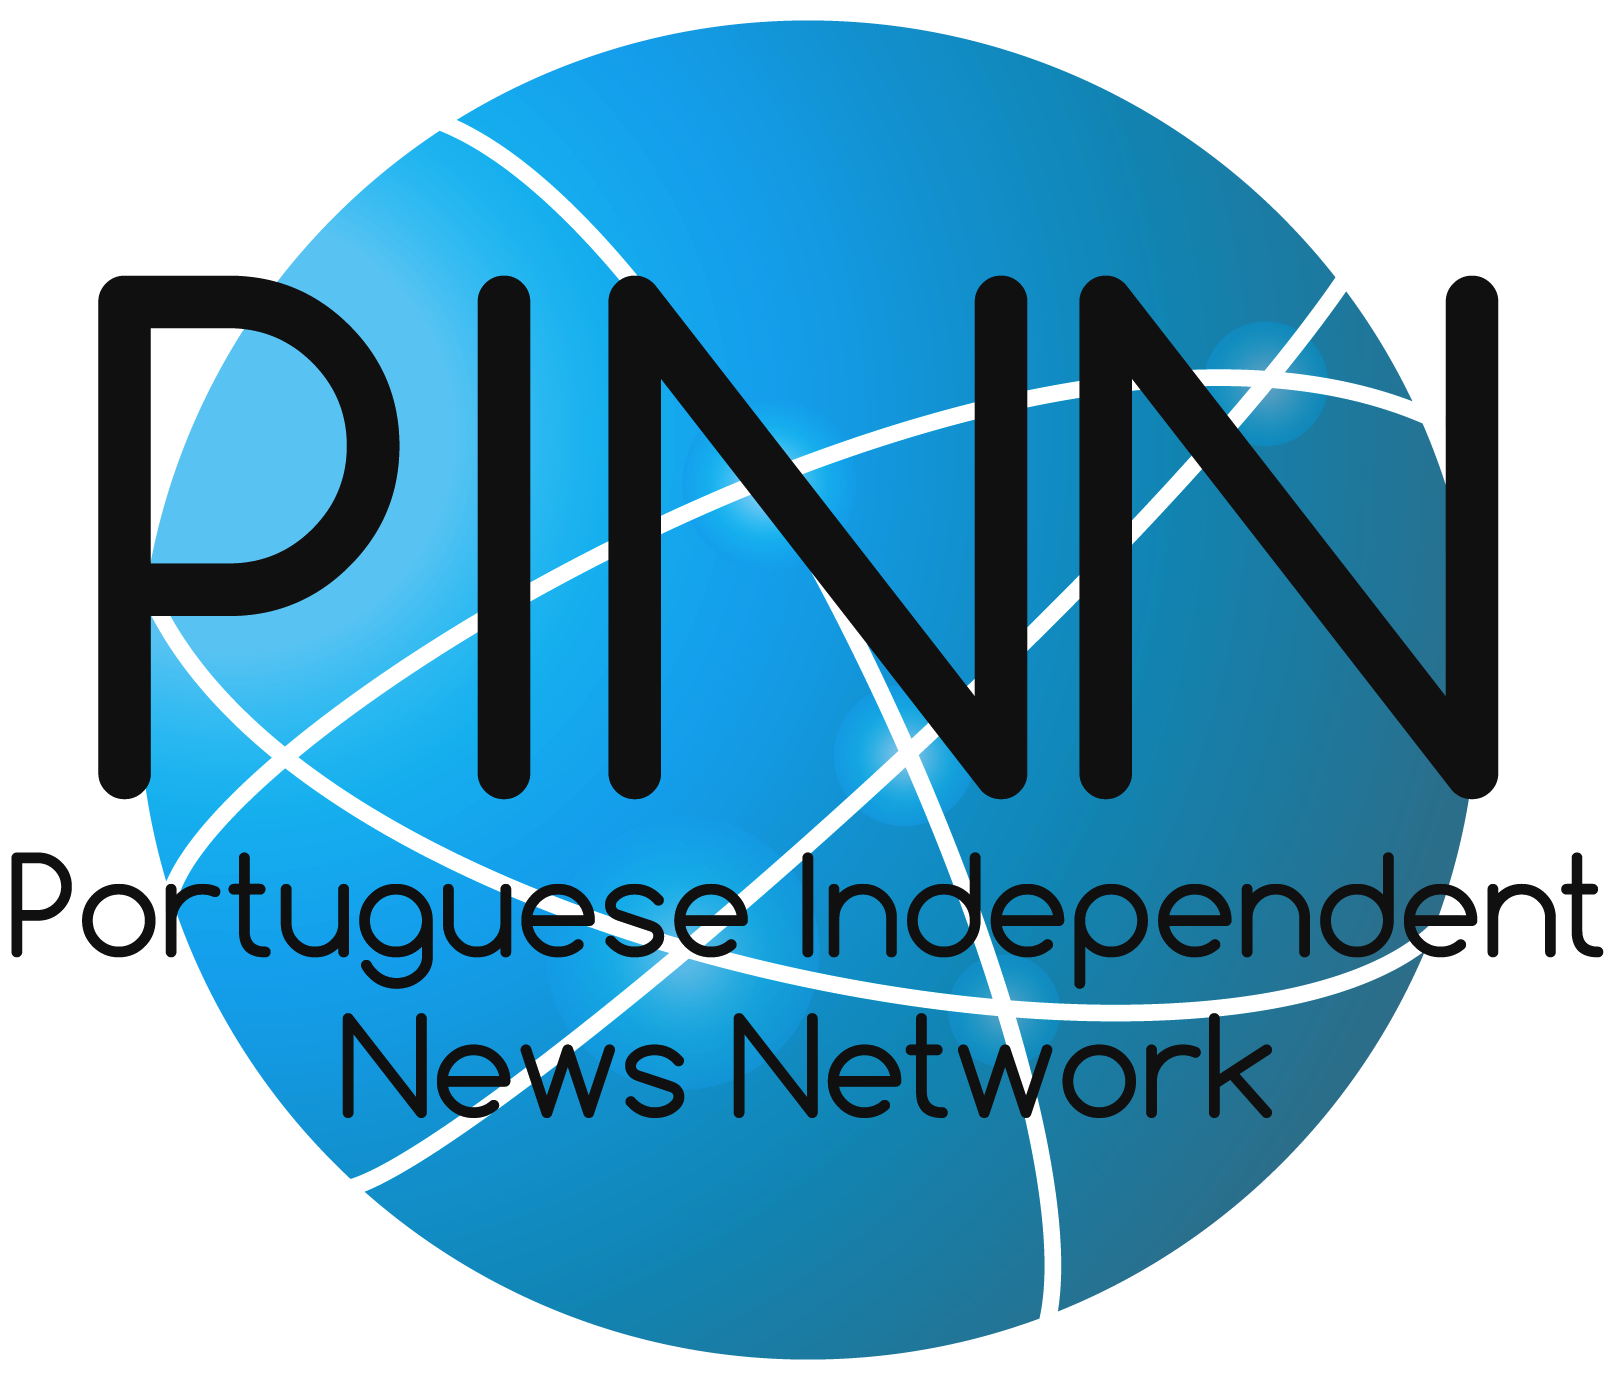 Portuguese Independent News